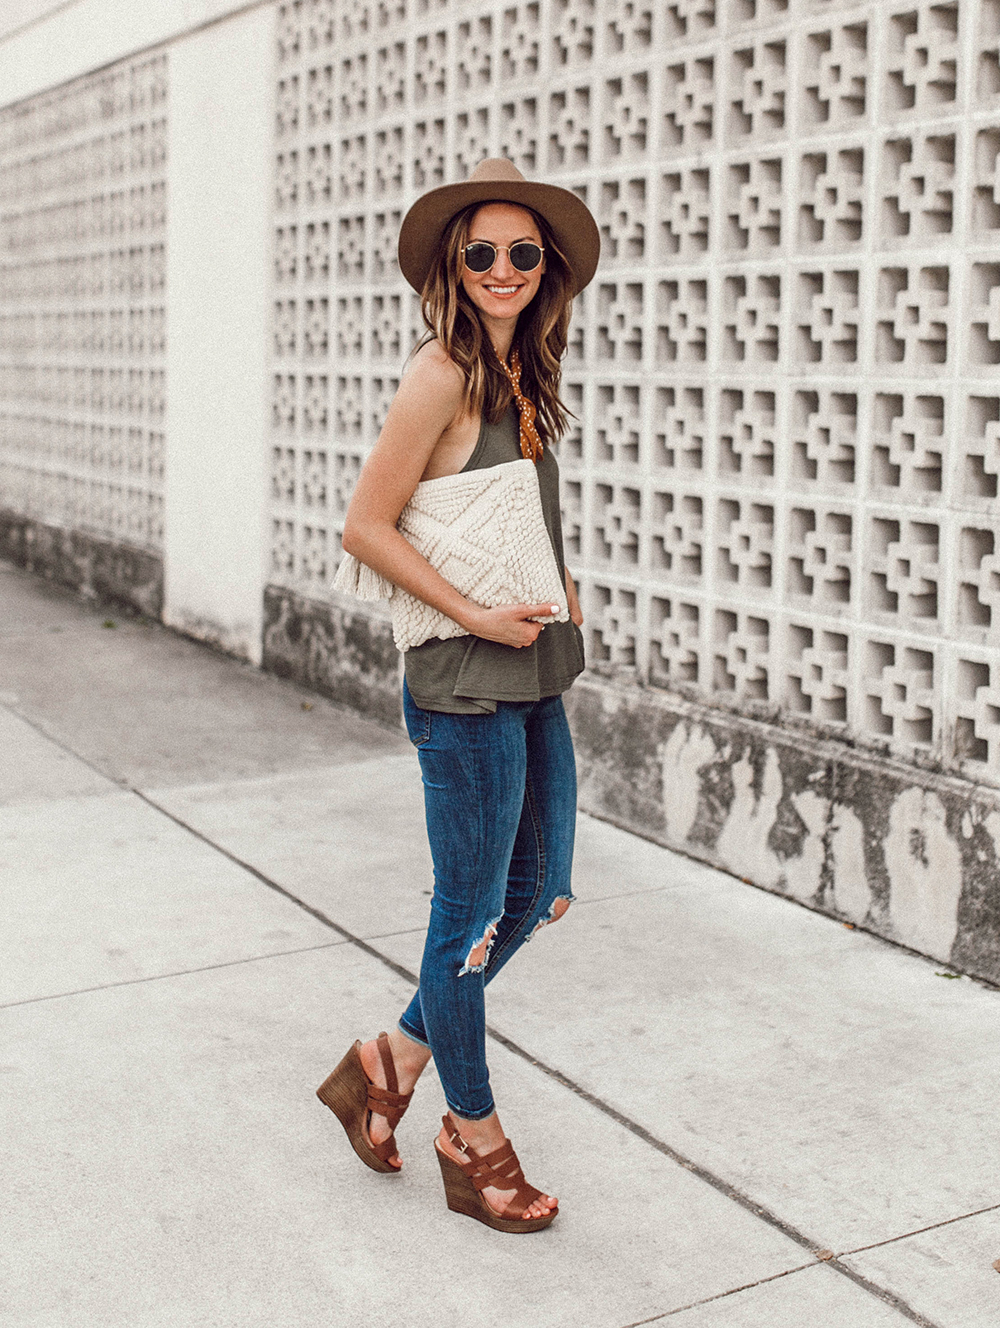 livvyland-blog-olivia-watson-austin-texas-fashion-style-blogger-sole-society-tan-sandal-wedges-2